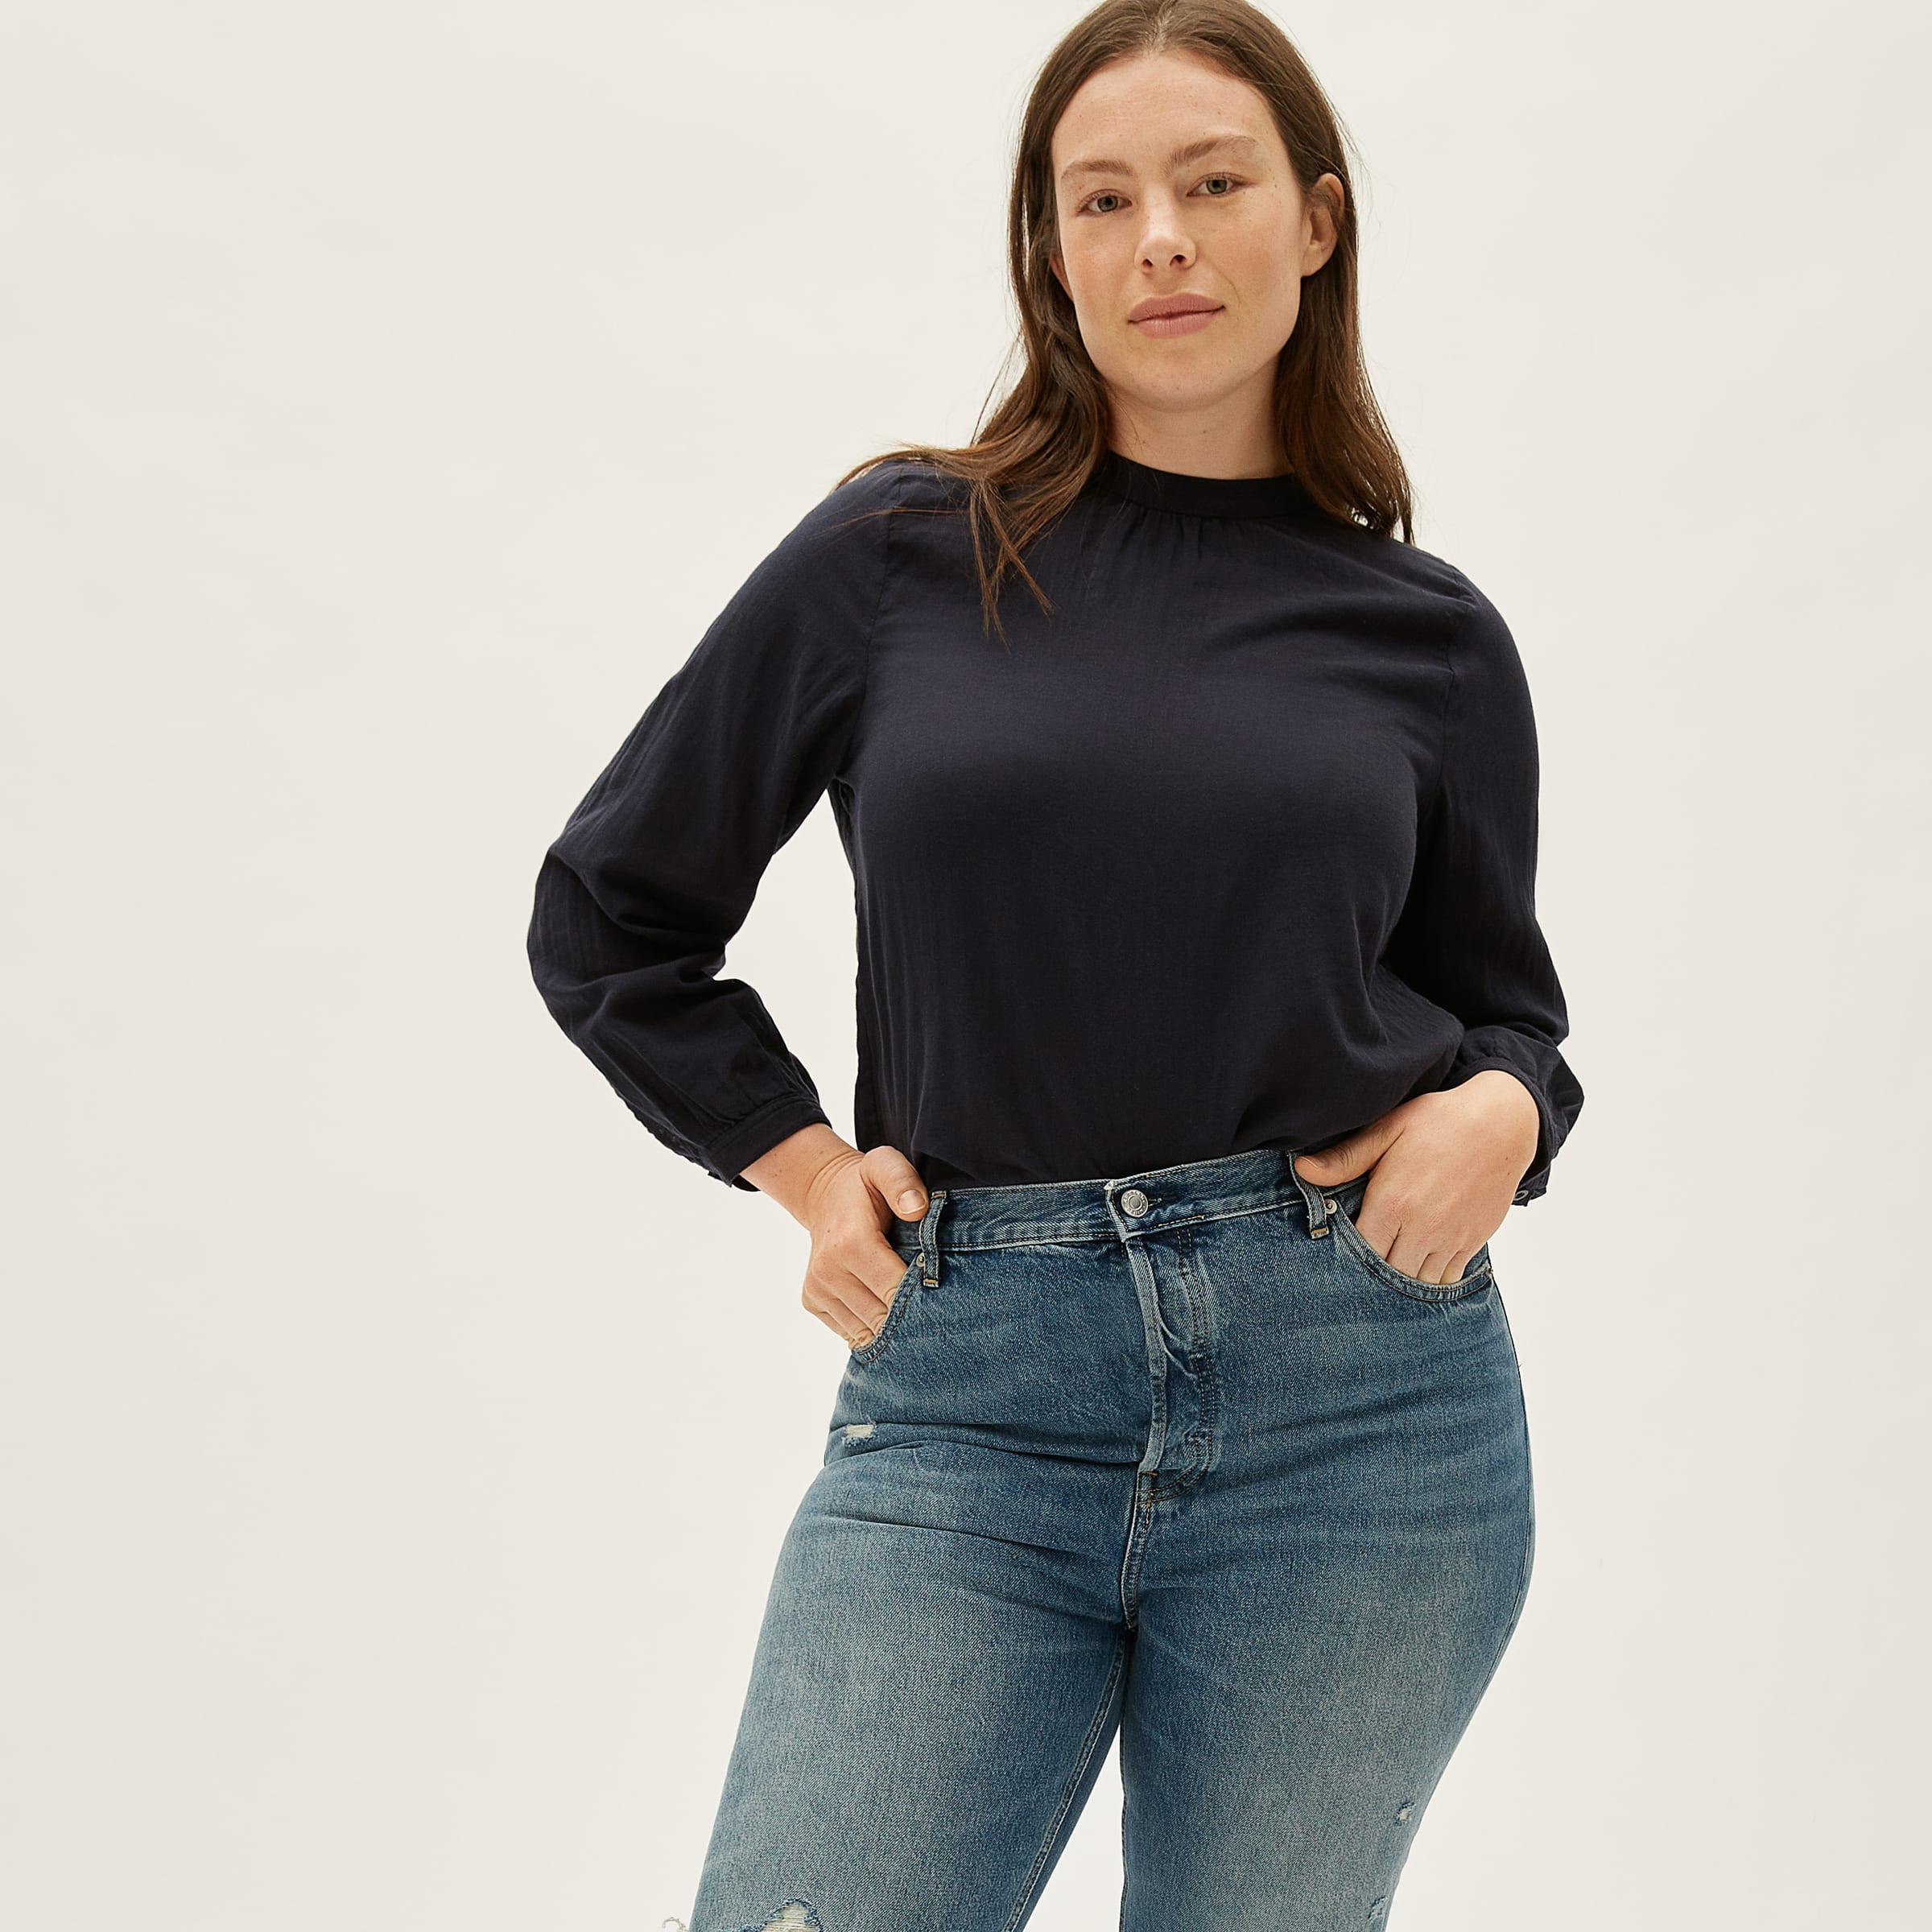 The Double-Gauze Shirred Top